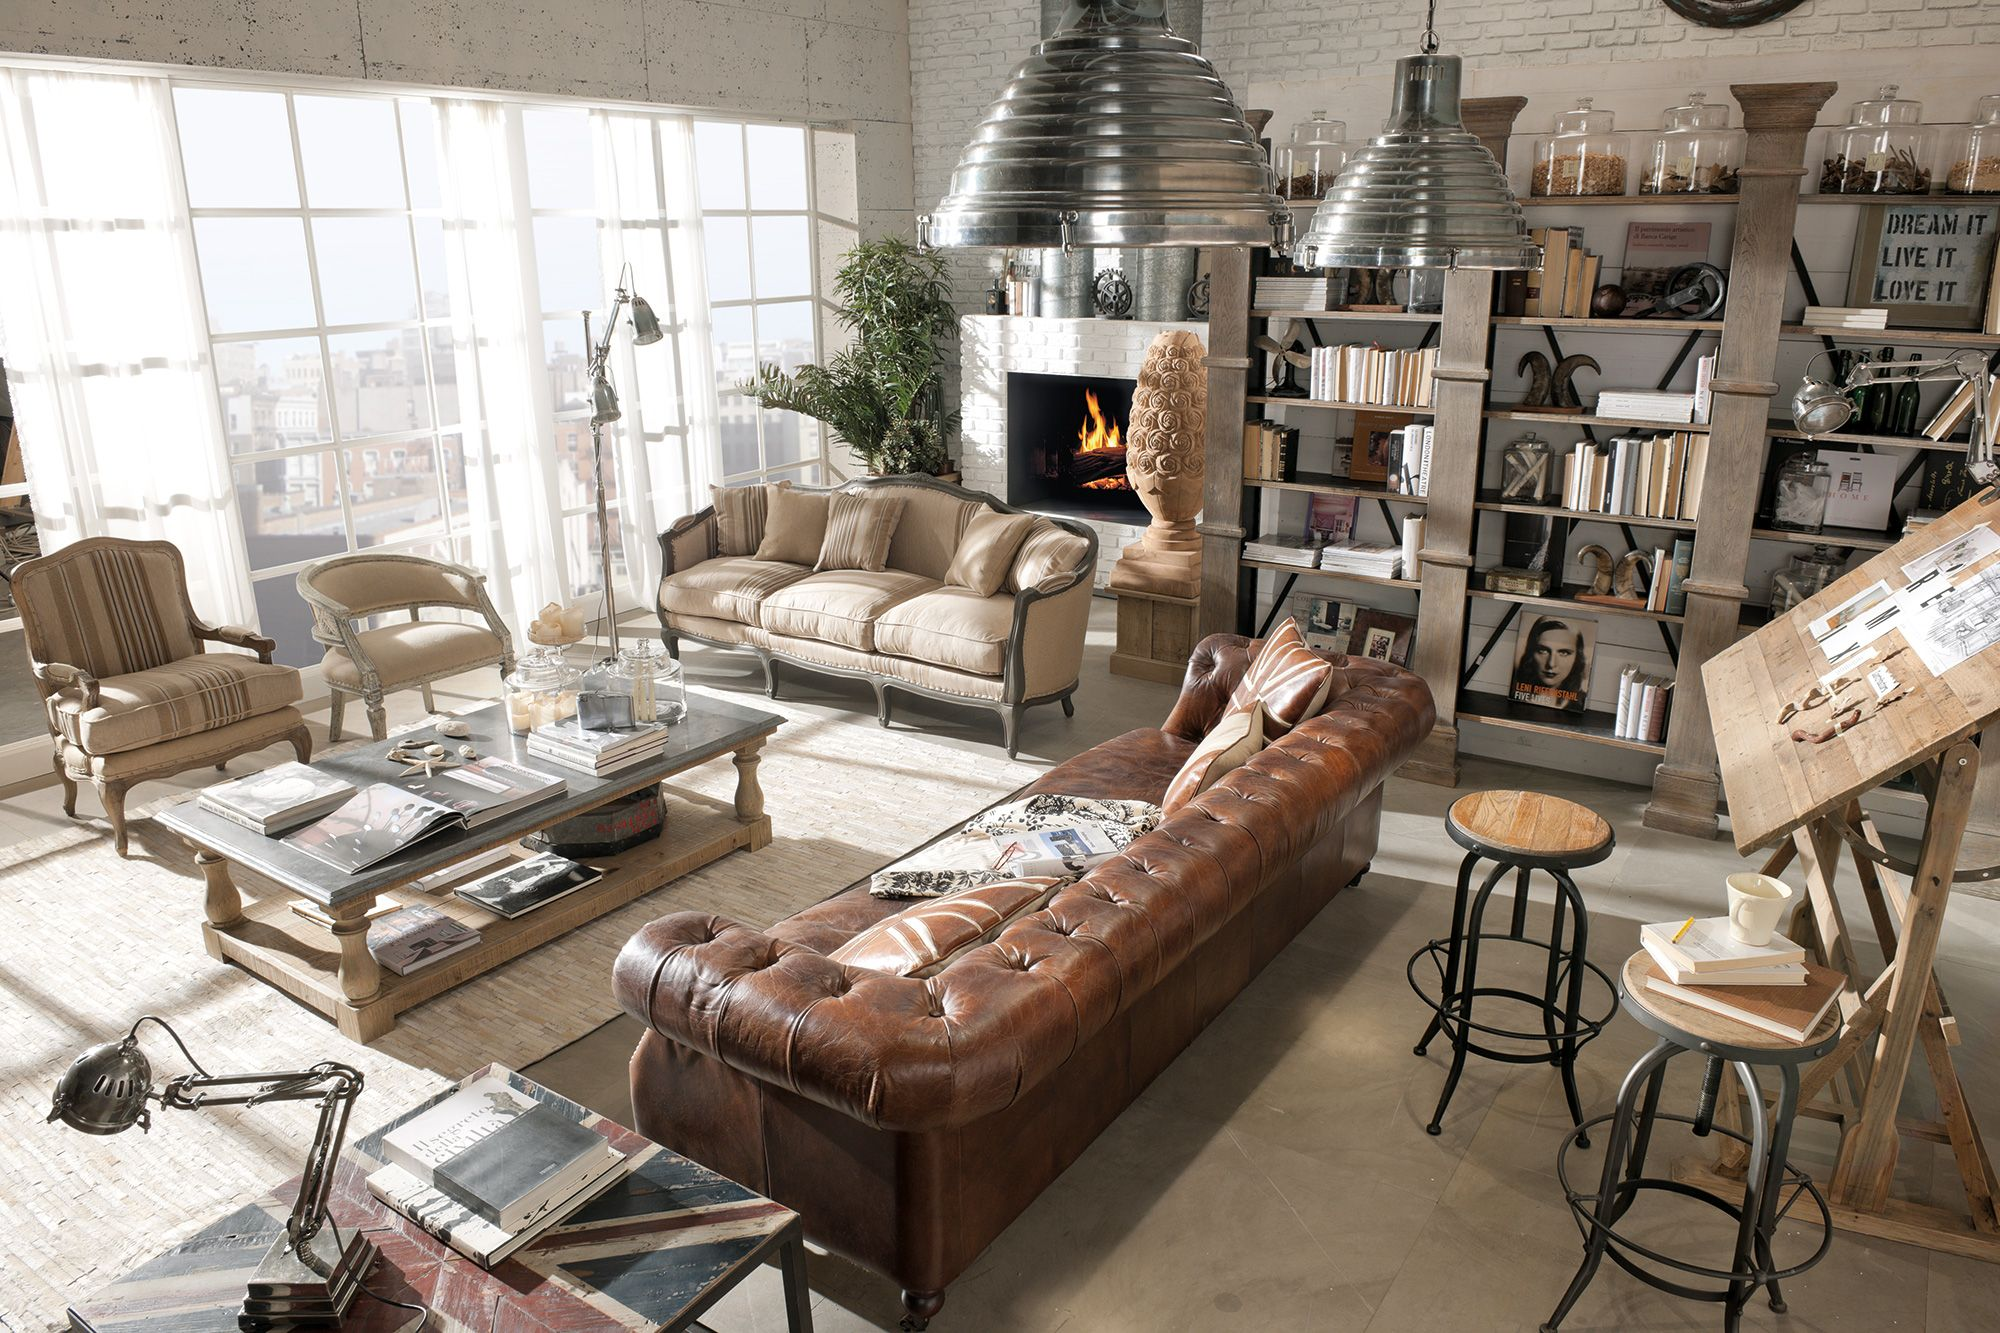 Arredamento country vintage industrial loft urban for Arredamento stile industriale loft